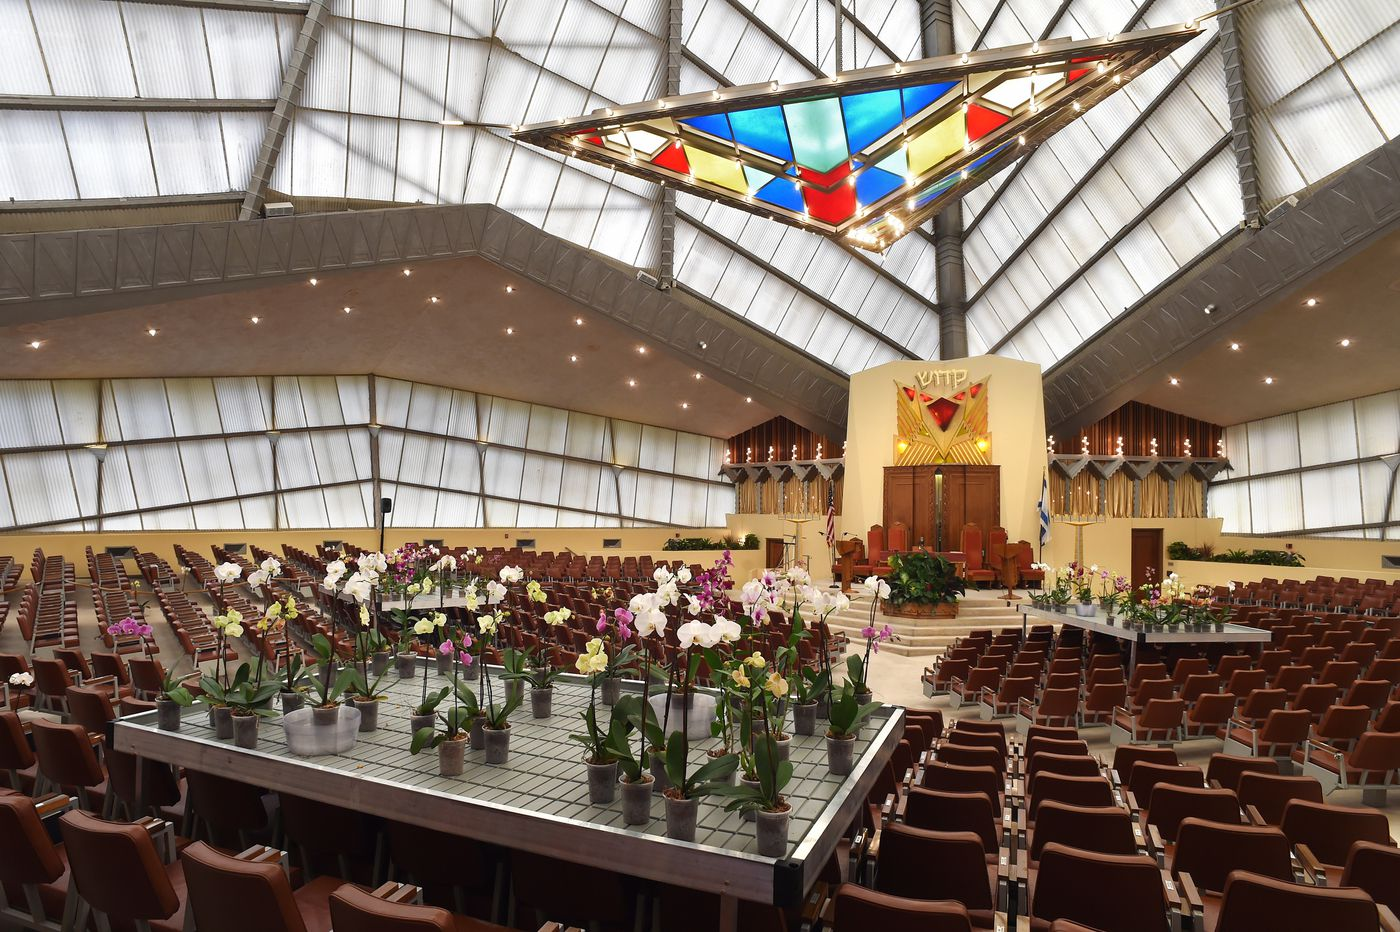 Frank Lloyd Wright's Beth Sholom Synagogue in Elkins Park to host major new art installation